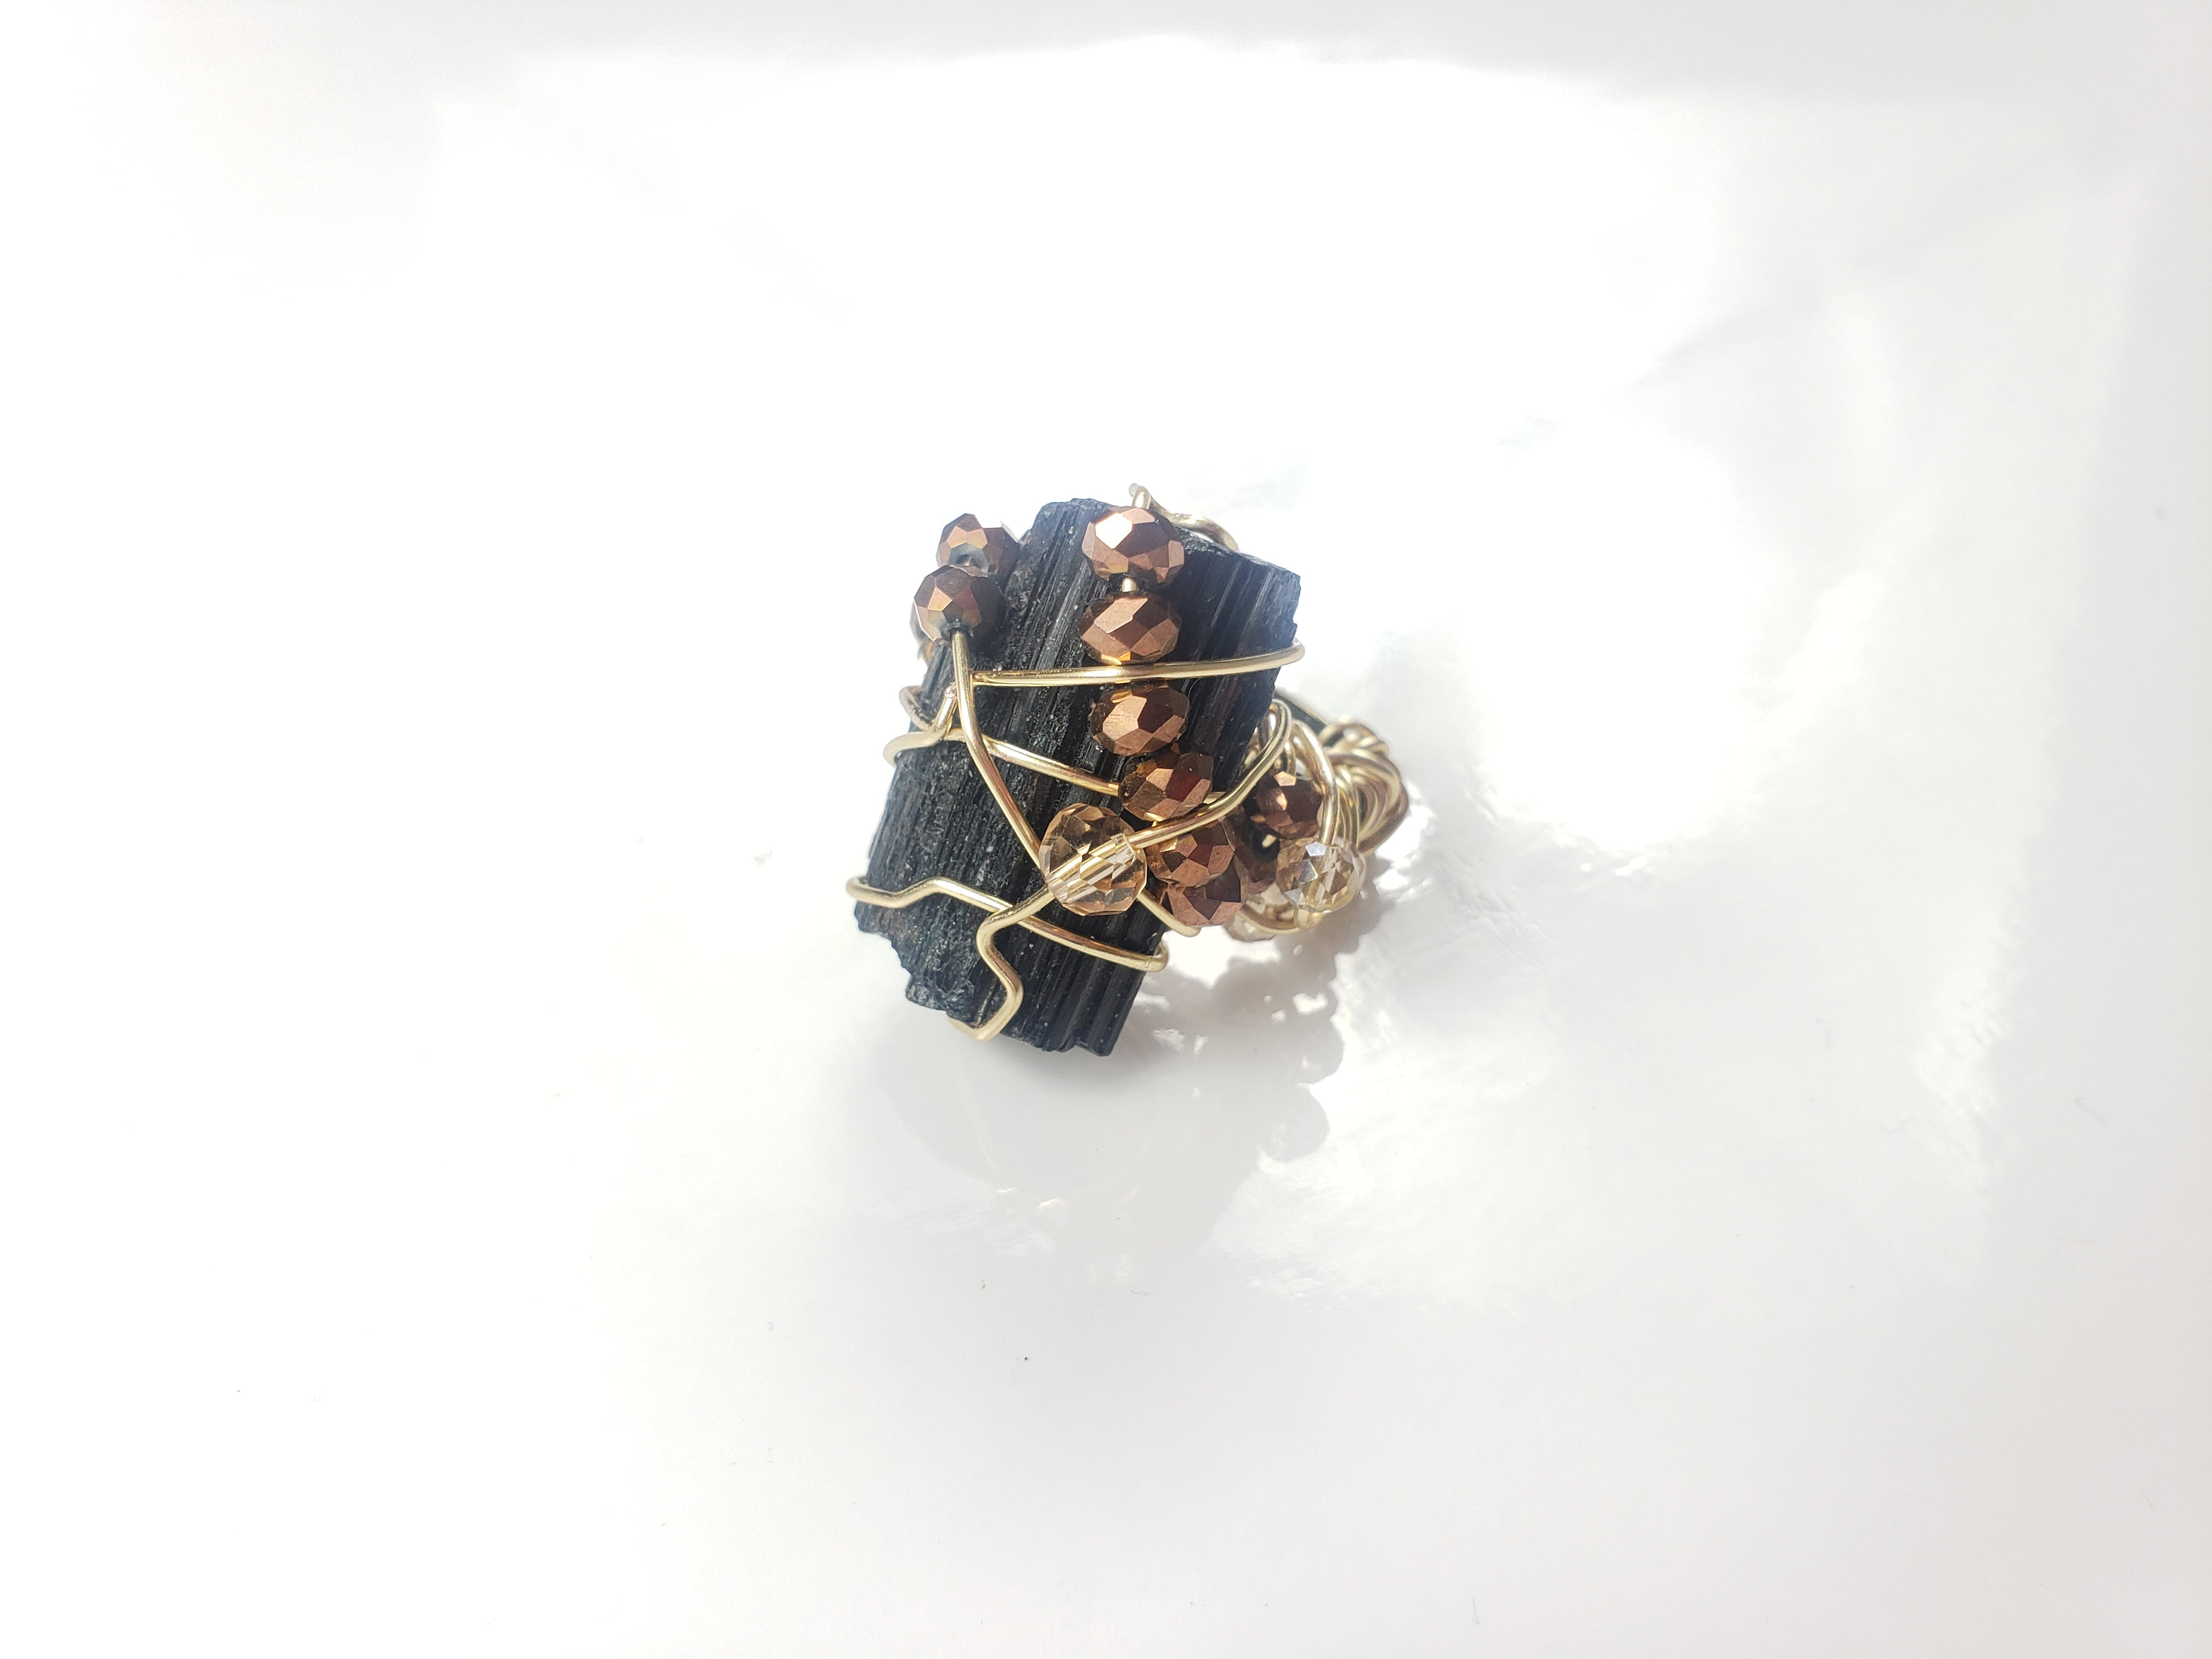 Black Tourmaline Ring, one of a kind crystal jewelry